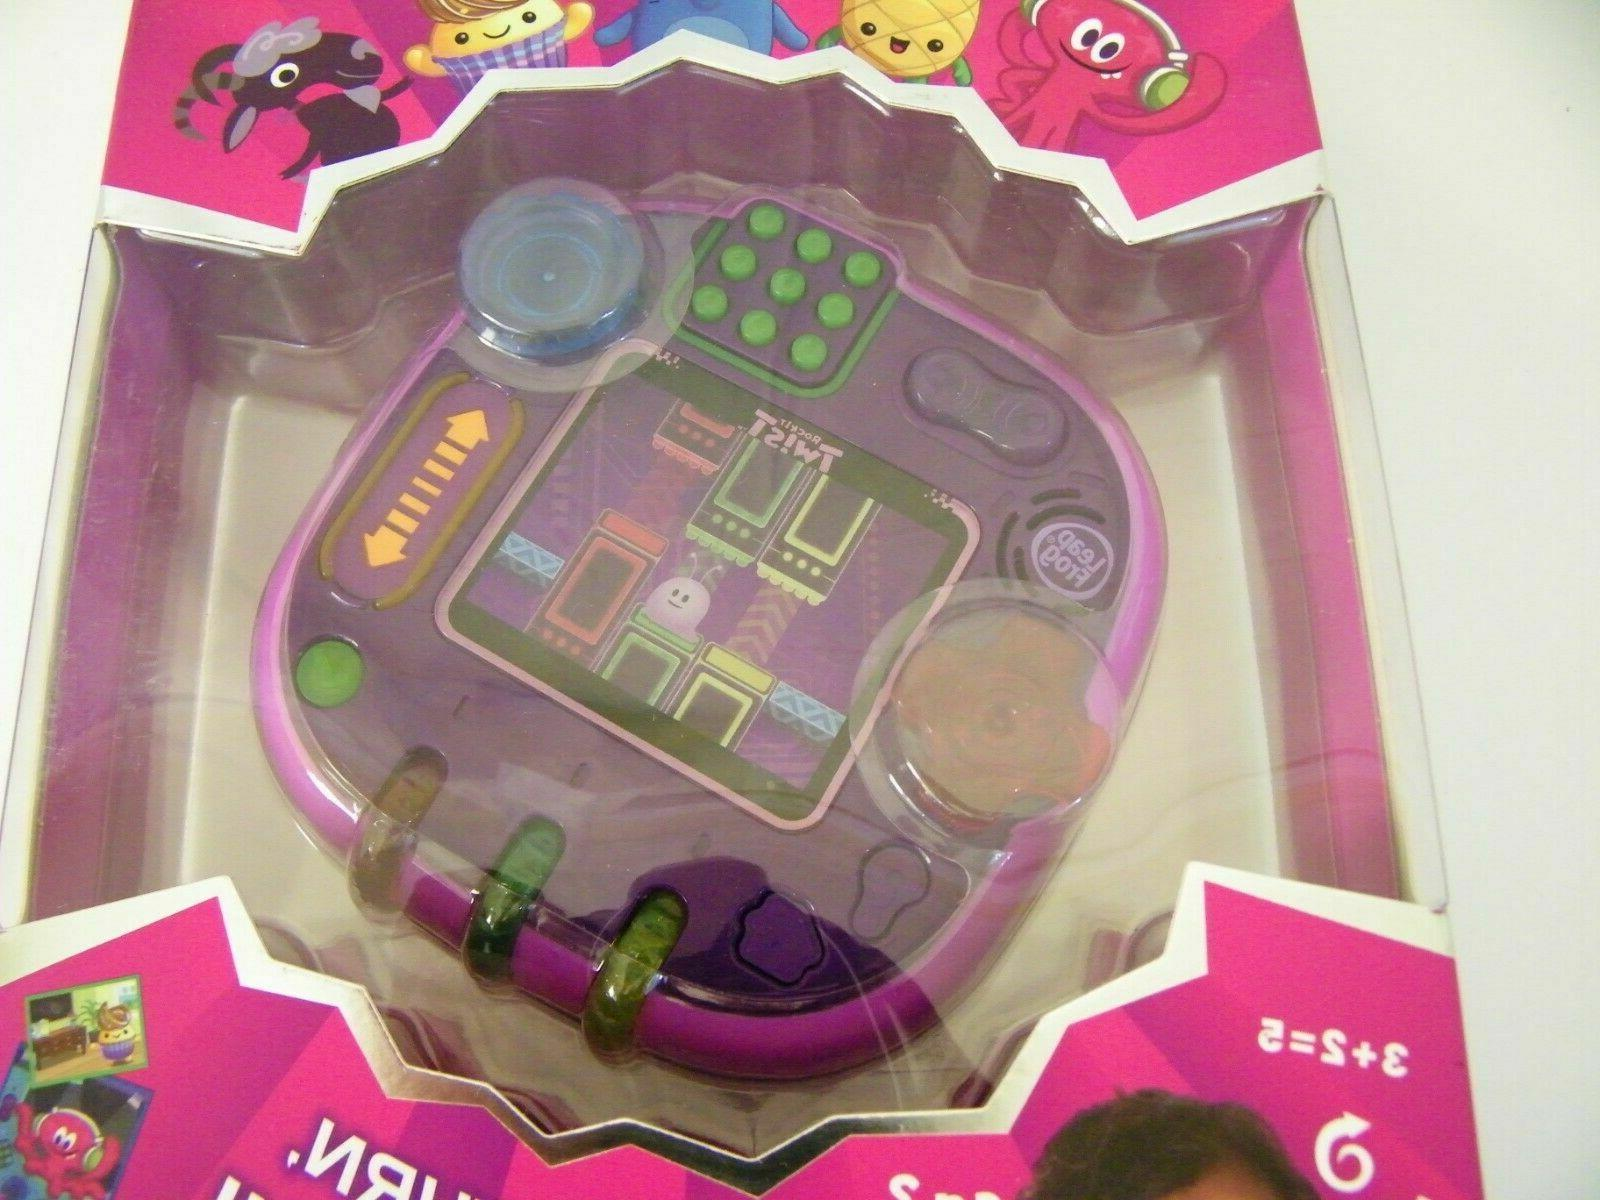 rockit twist kids handheld learning game system